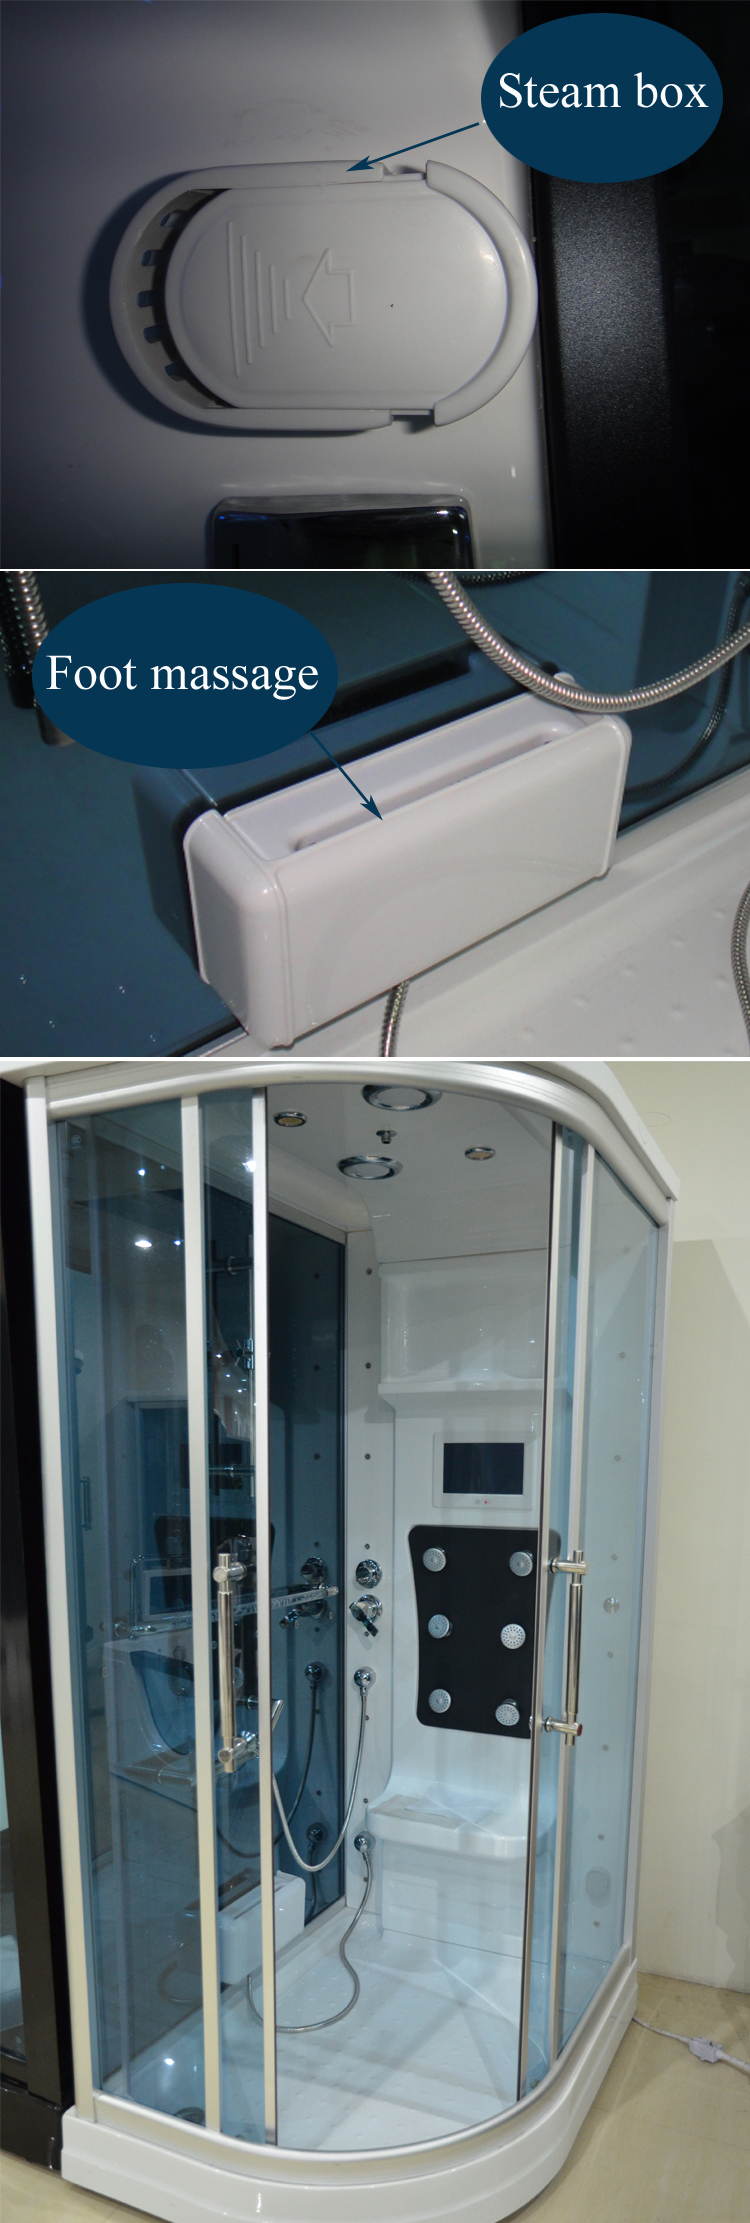 HS-SR010 hydromassage shower cabin/ japan sex steam bath/ personal steam cabinet